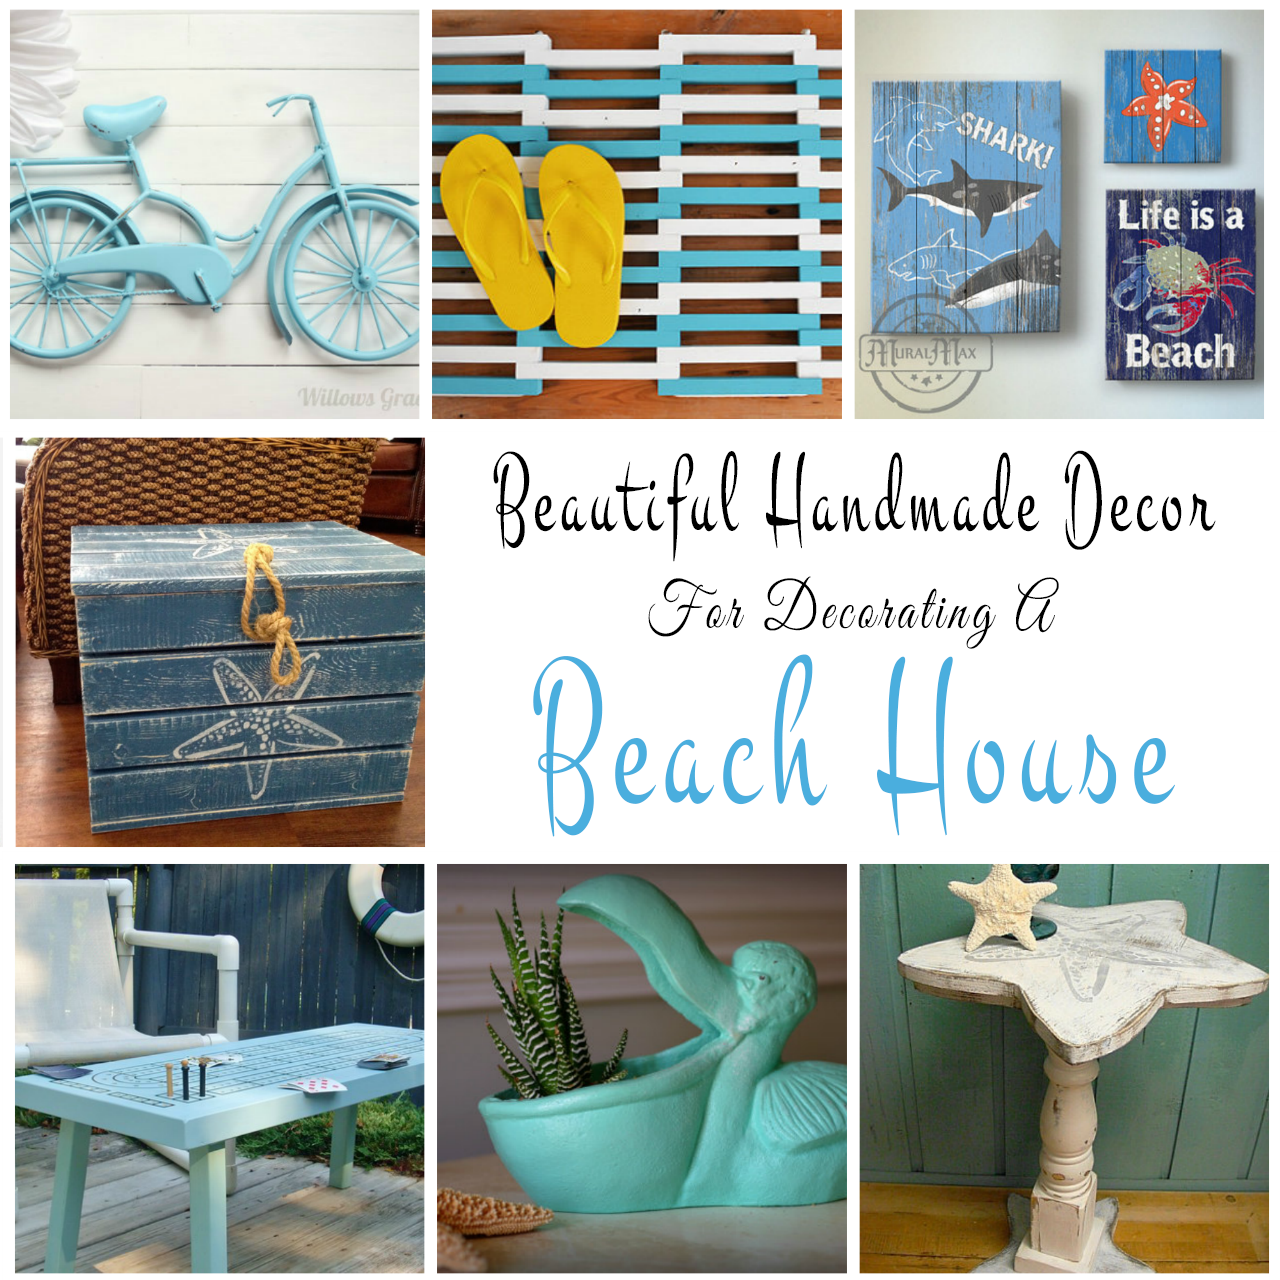 Handmade decor ideas for decorating a beach house for Decorative accessories for your home